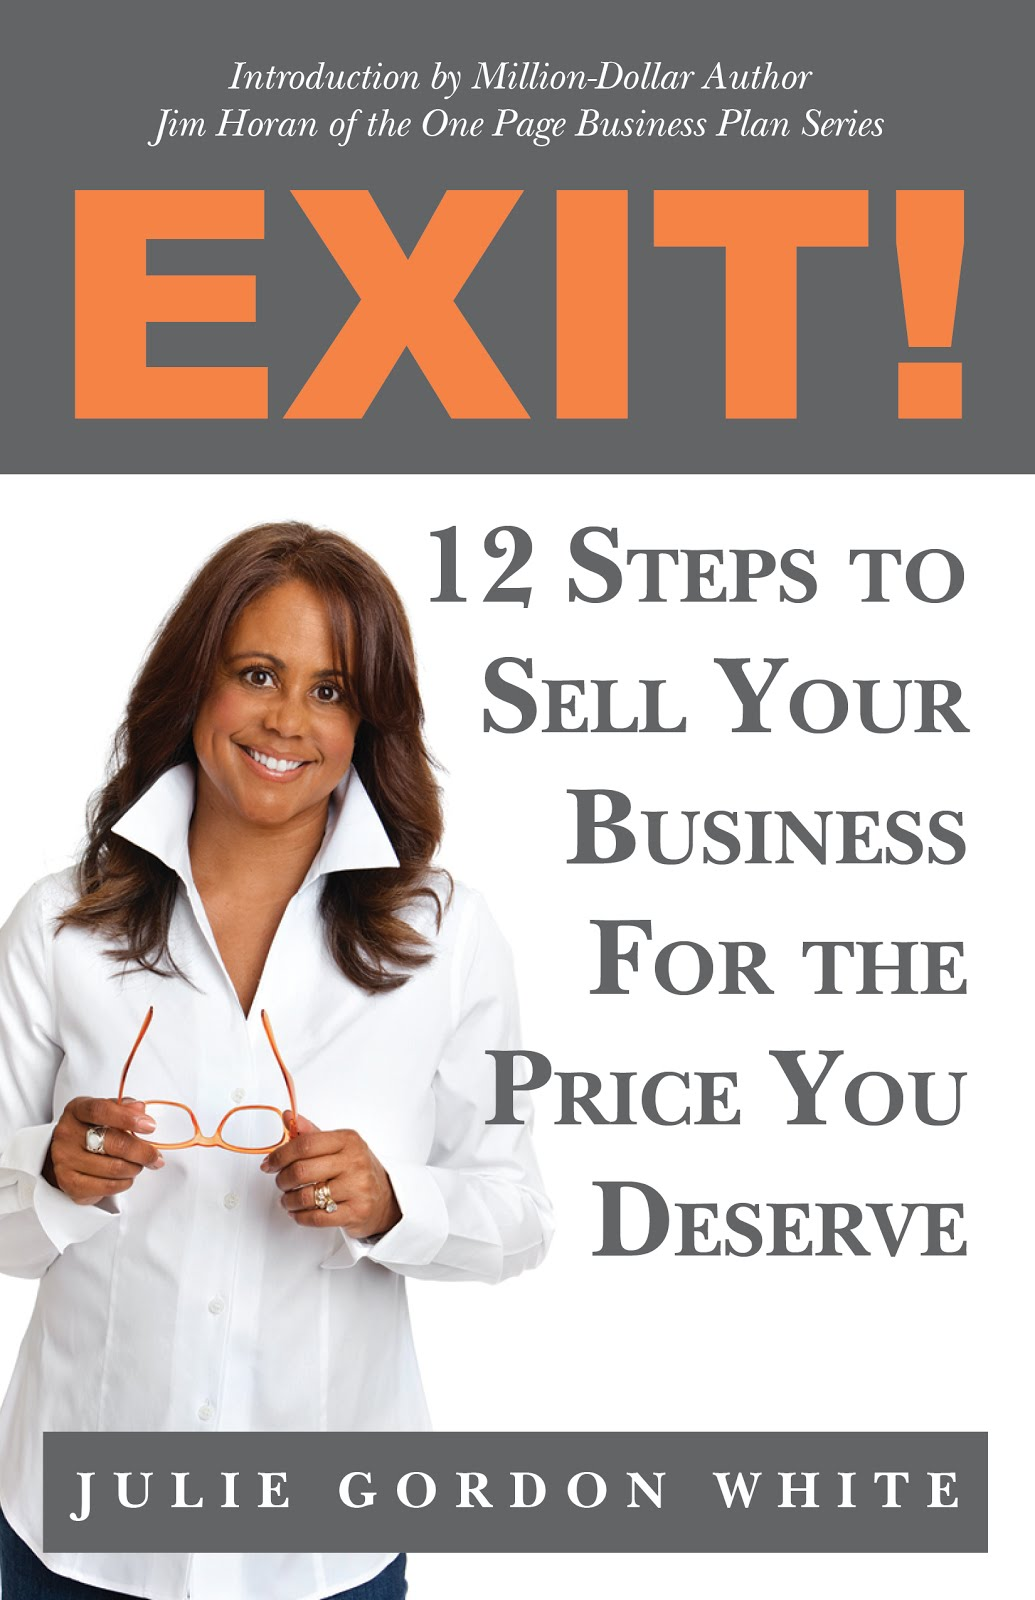 Begin with Your End in Mind and GET Julie's EXIT! BOOK, AN AMAZON BUSINESS BESTSELLER!